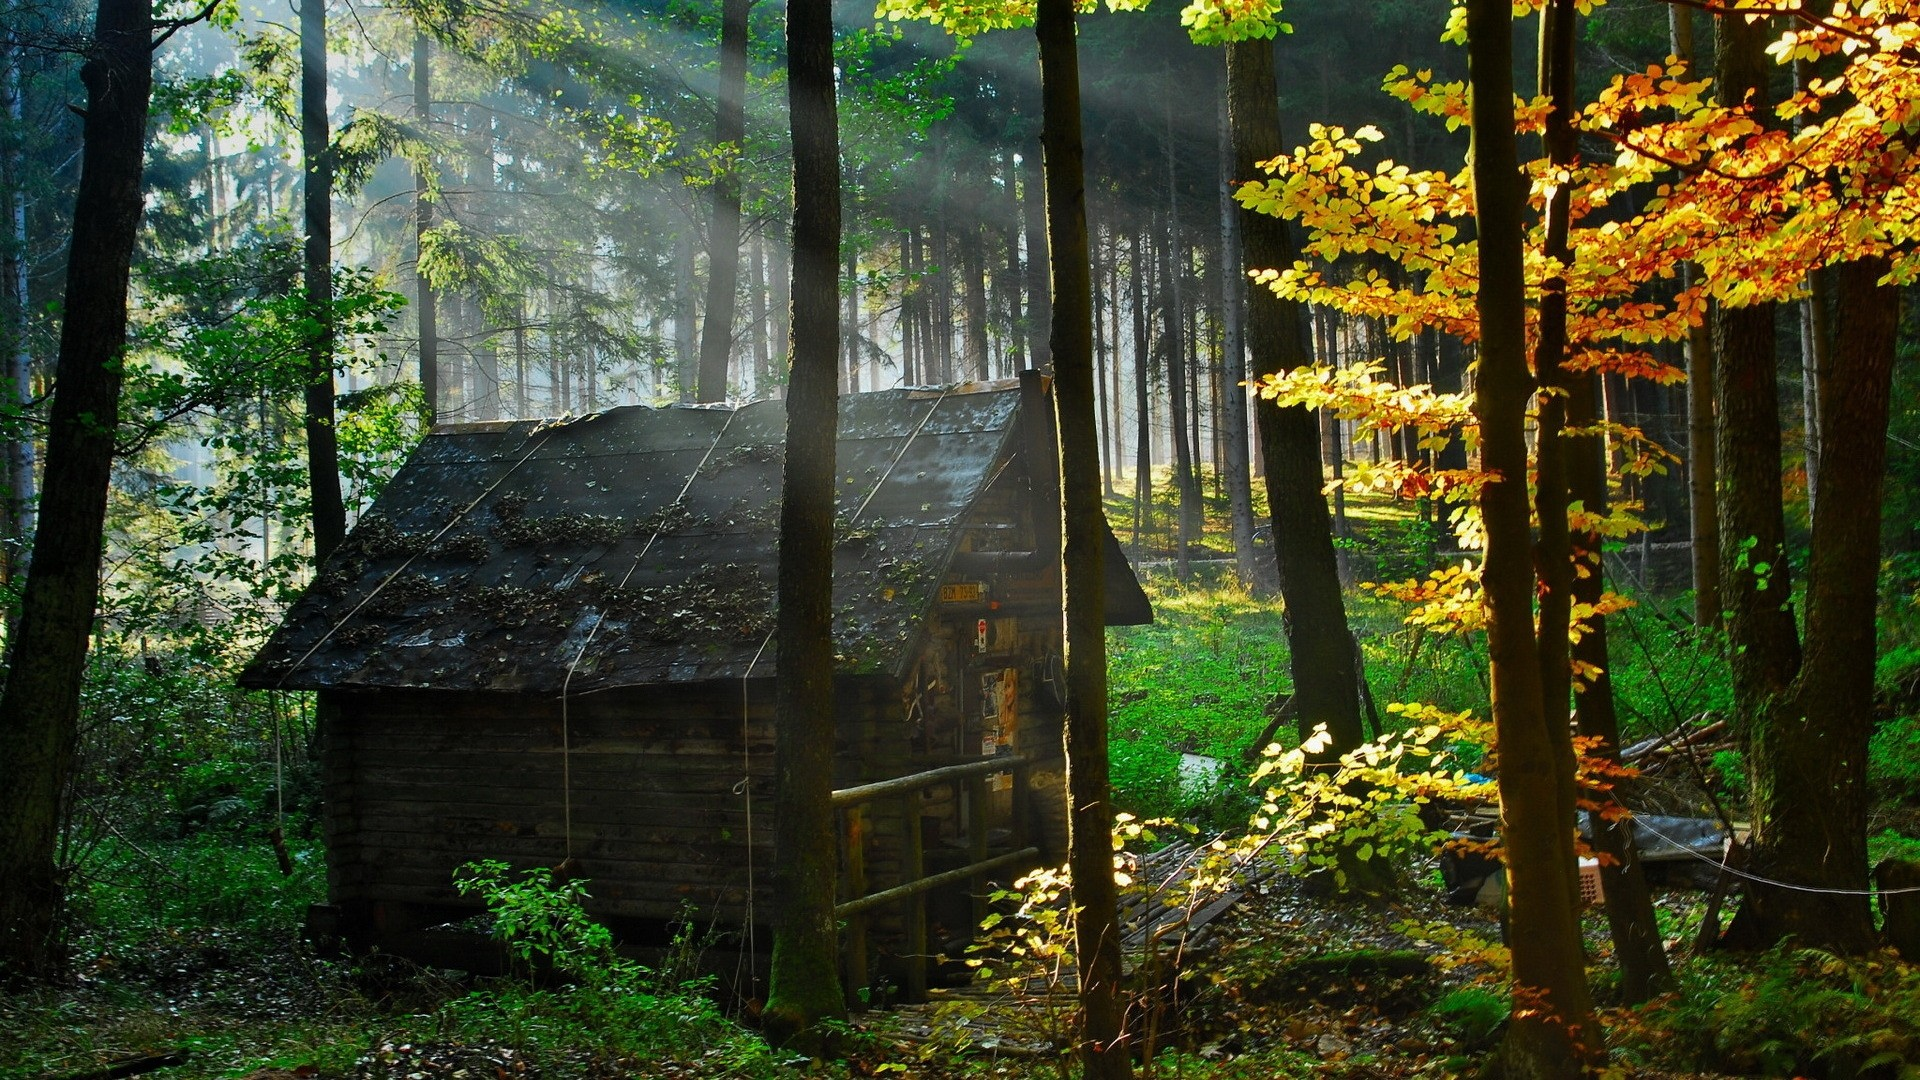 Res: 1920x1080, Mansion Wallpaper House Savers Forest Haunted Chainimage  Desktop  Pc And Mac